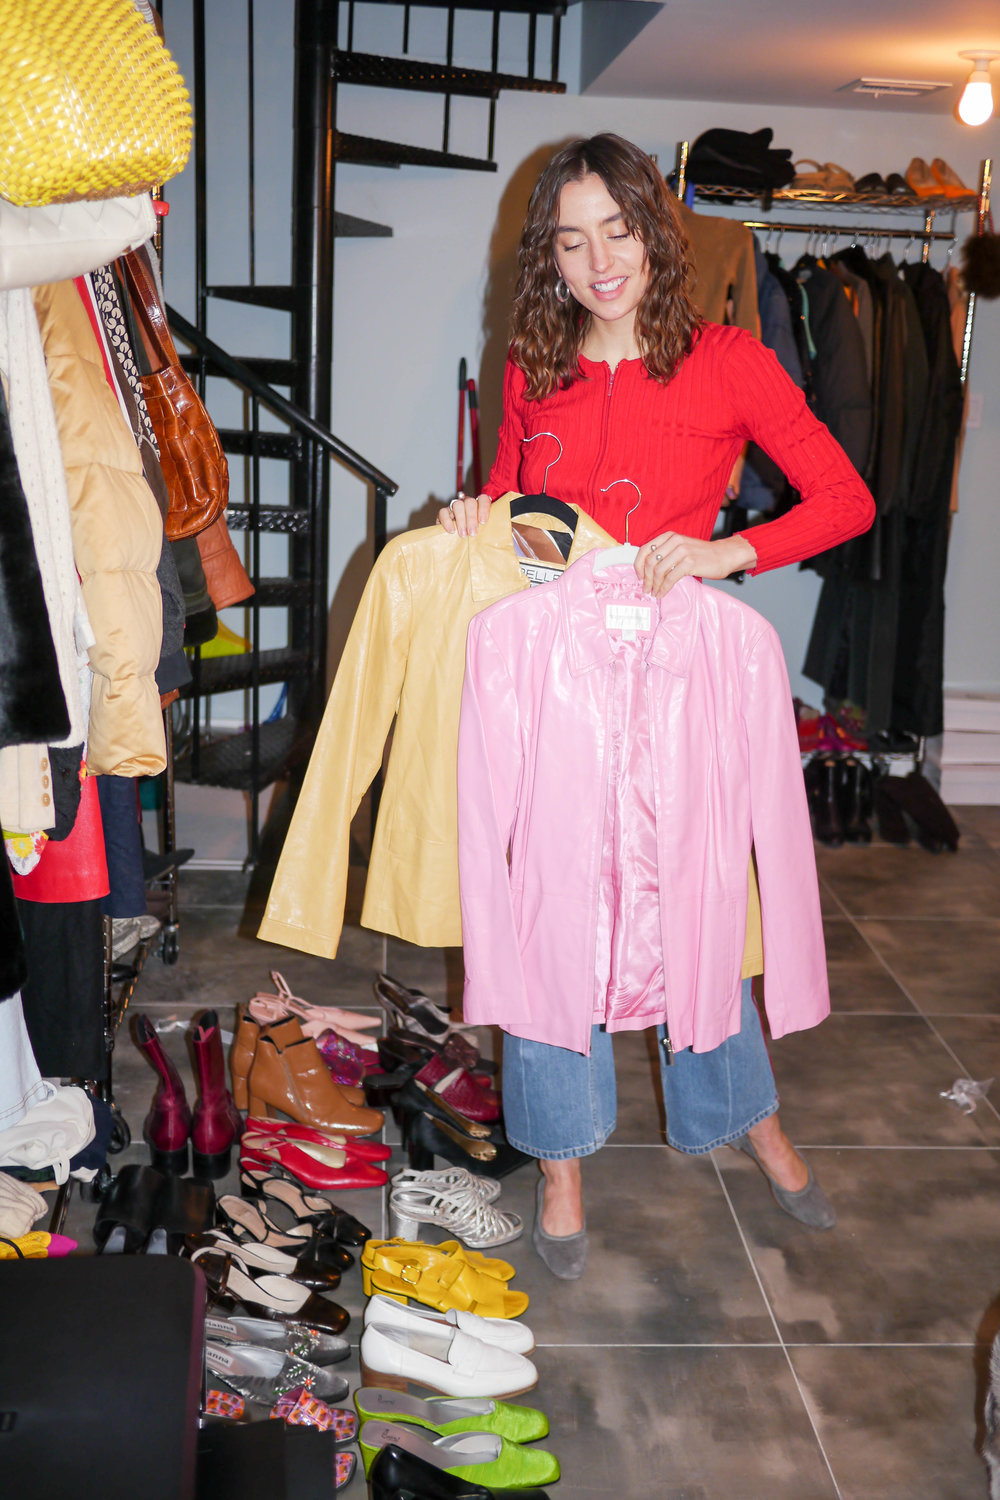 Top, Vintage ; Jeans, Handmade ; Shoes, Maryam Nassir Zadeh